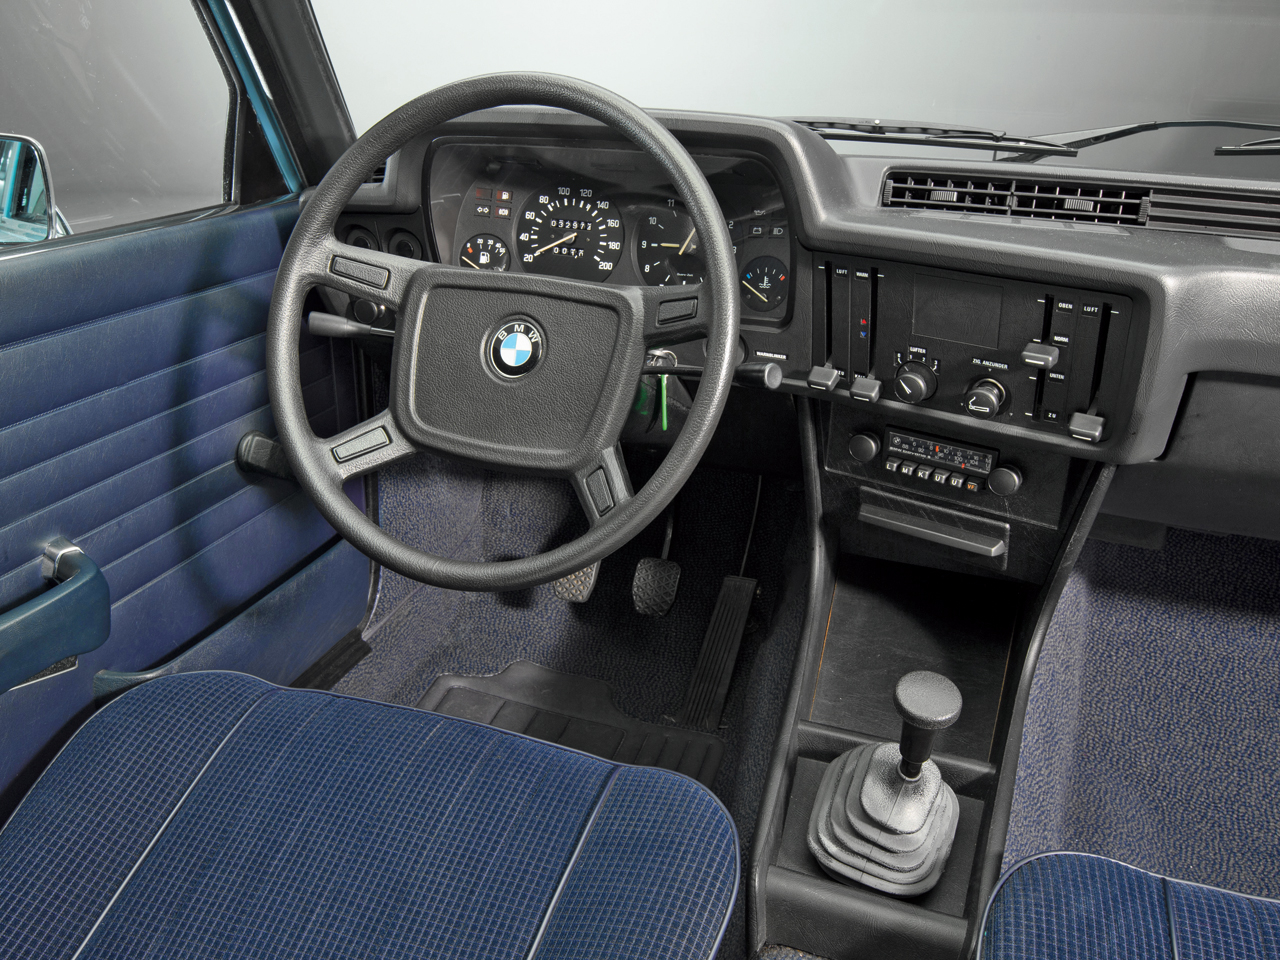 BMW 3 series 318 1975 photo - 7